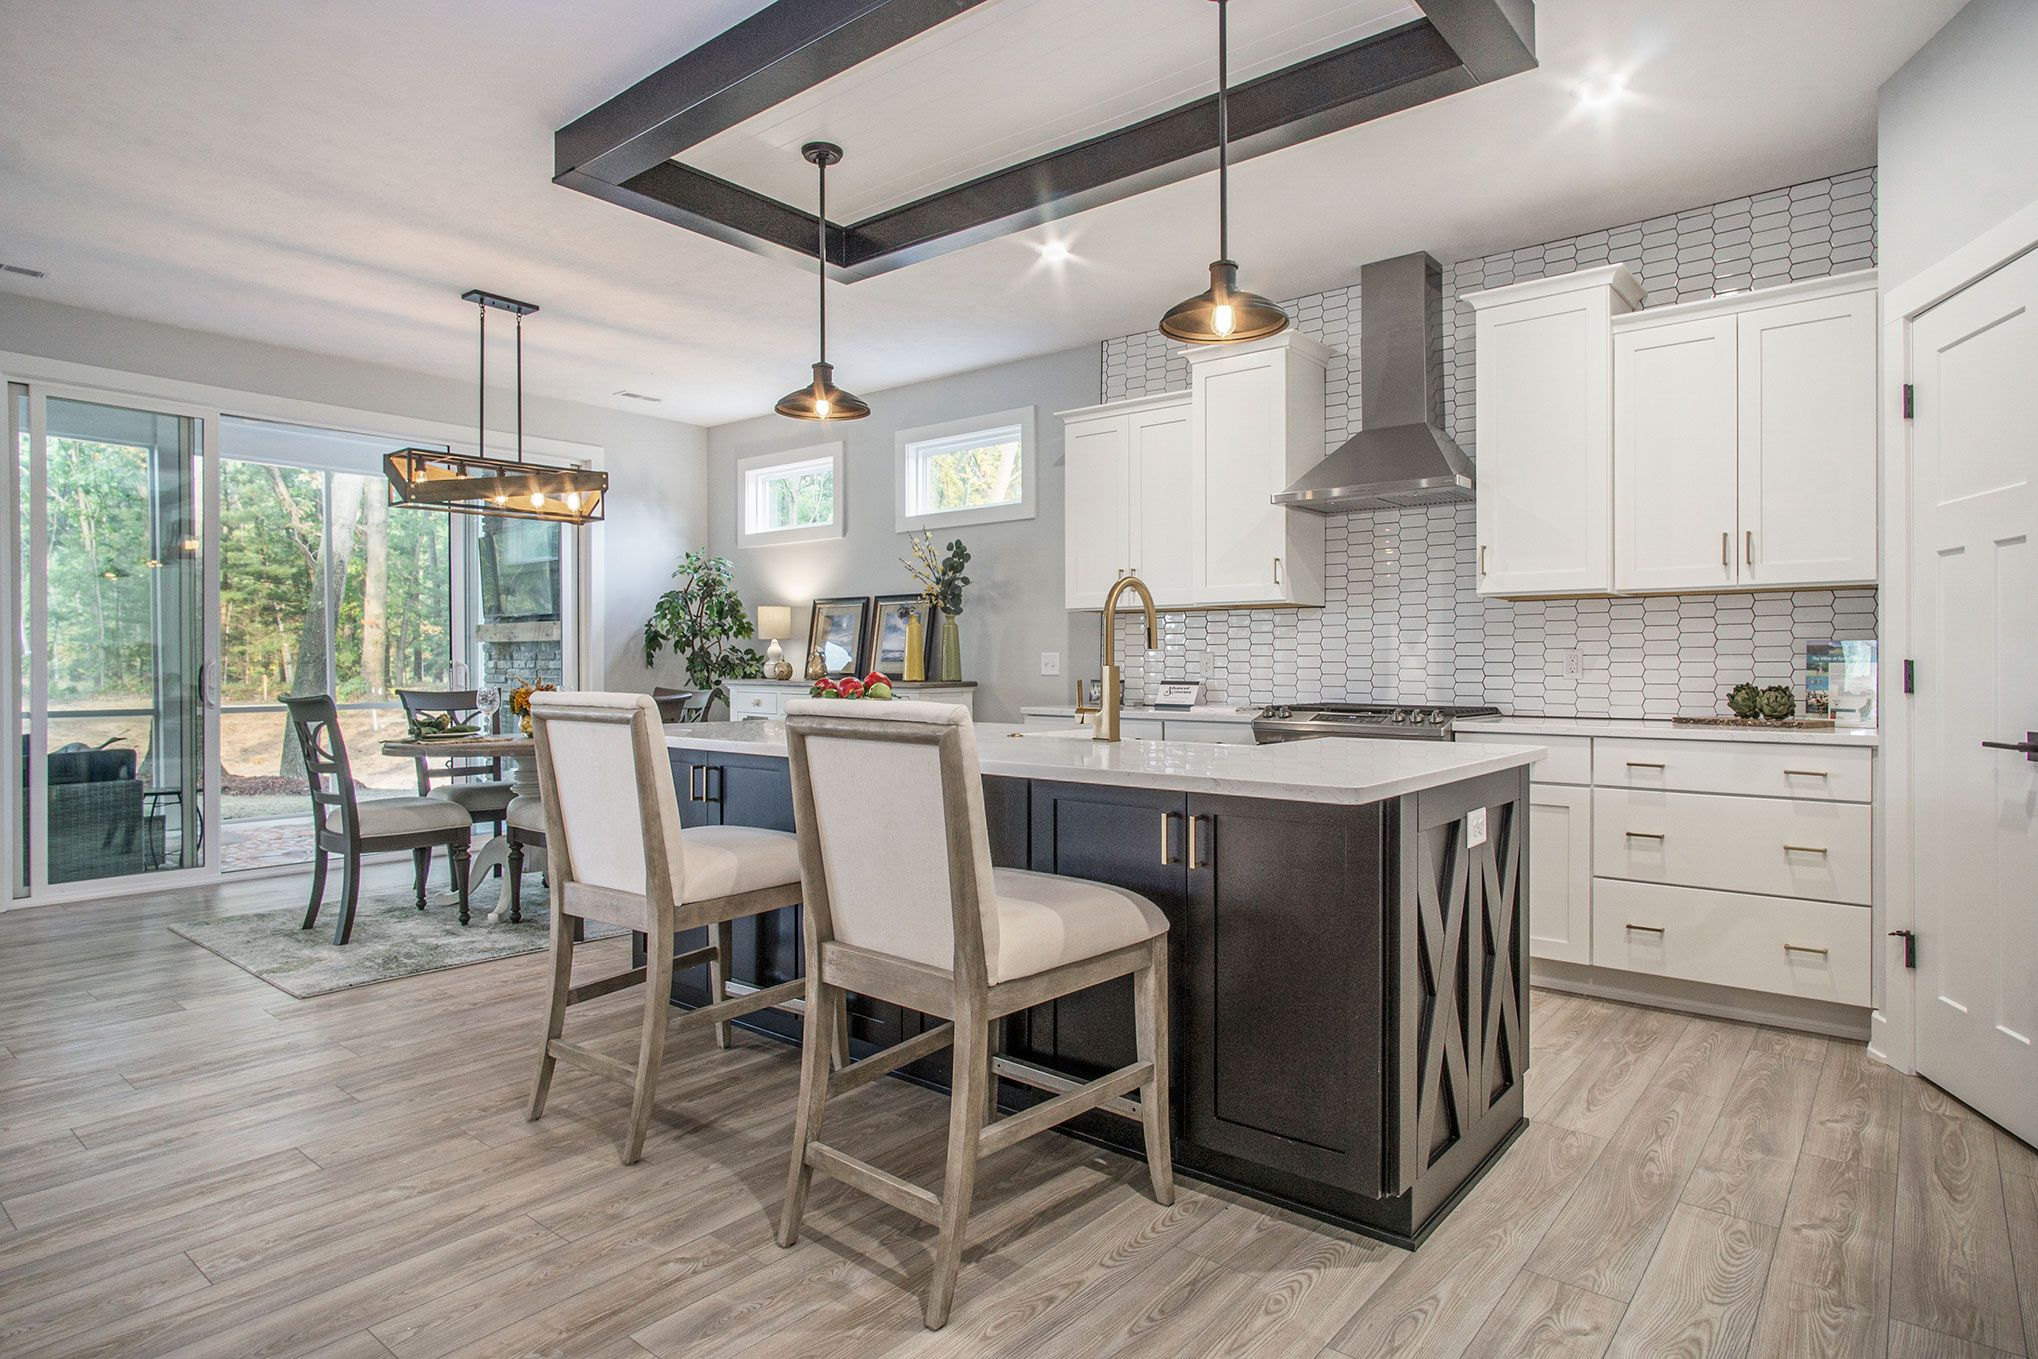 Kitchen featured in The Jasmine By Eastbrook Homes Inc. in Grand Rapids, MI